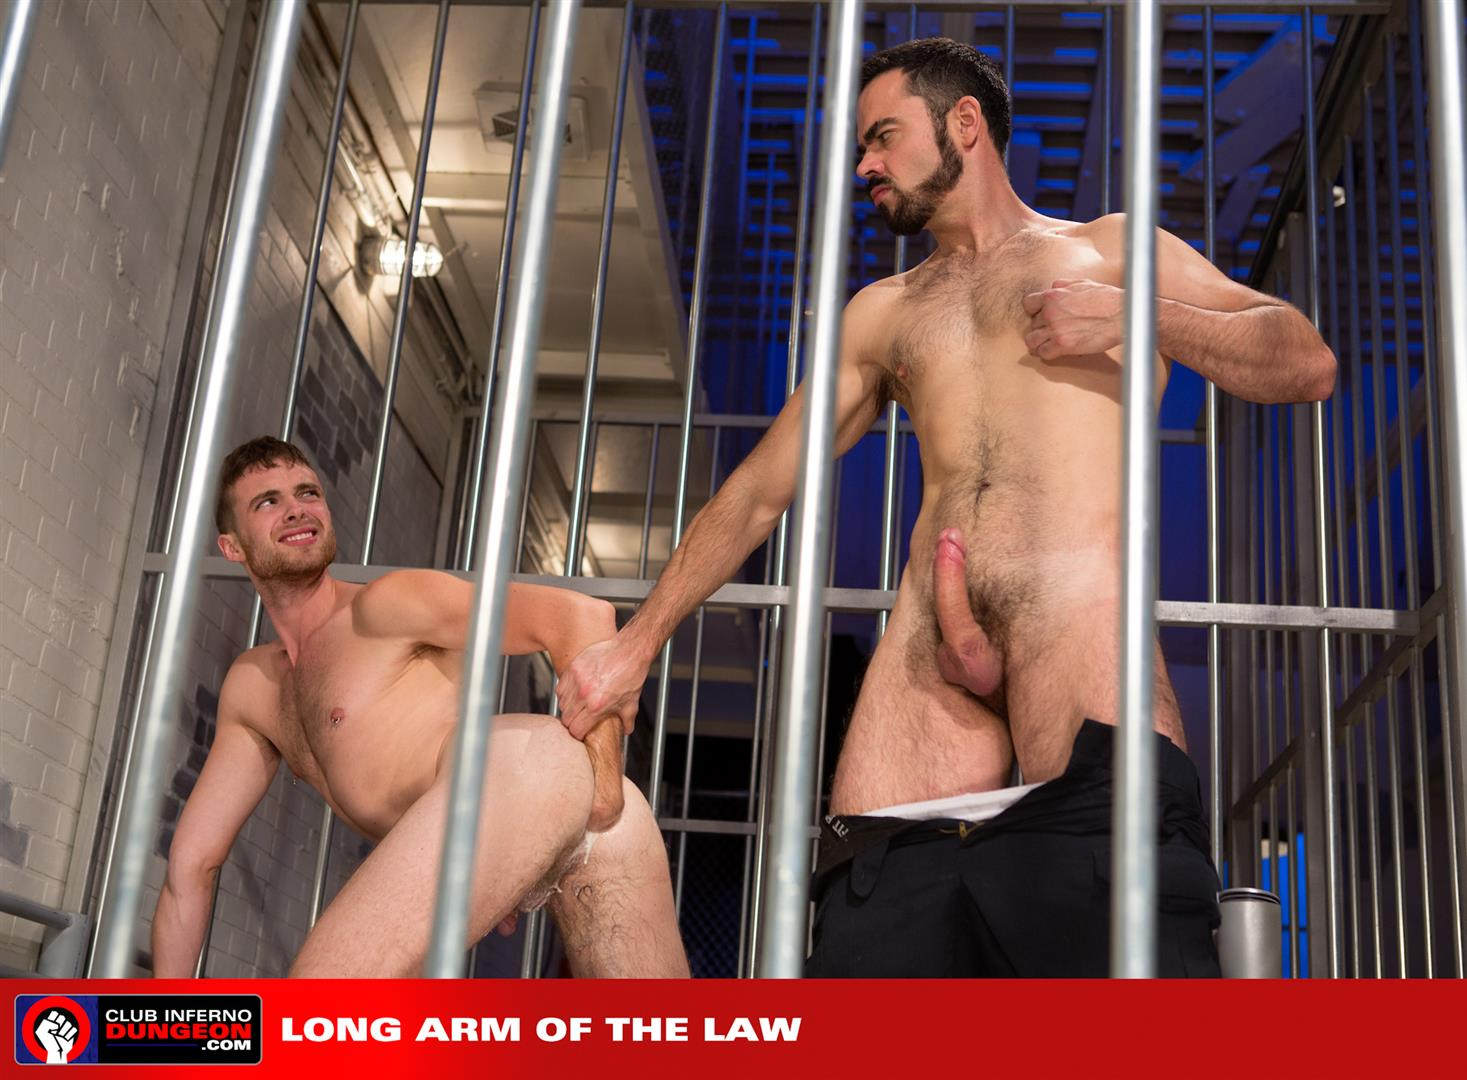 Club-Inferno-Brandon-Moore-and-Dolan-Wolf-Prison-Guard-Fisting-an-Inmate-Amateur-Gay-Porn-14 Prison Guard Fisting A Repeat Offender In Jail